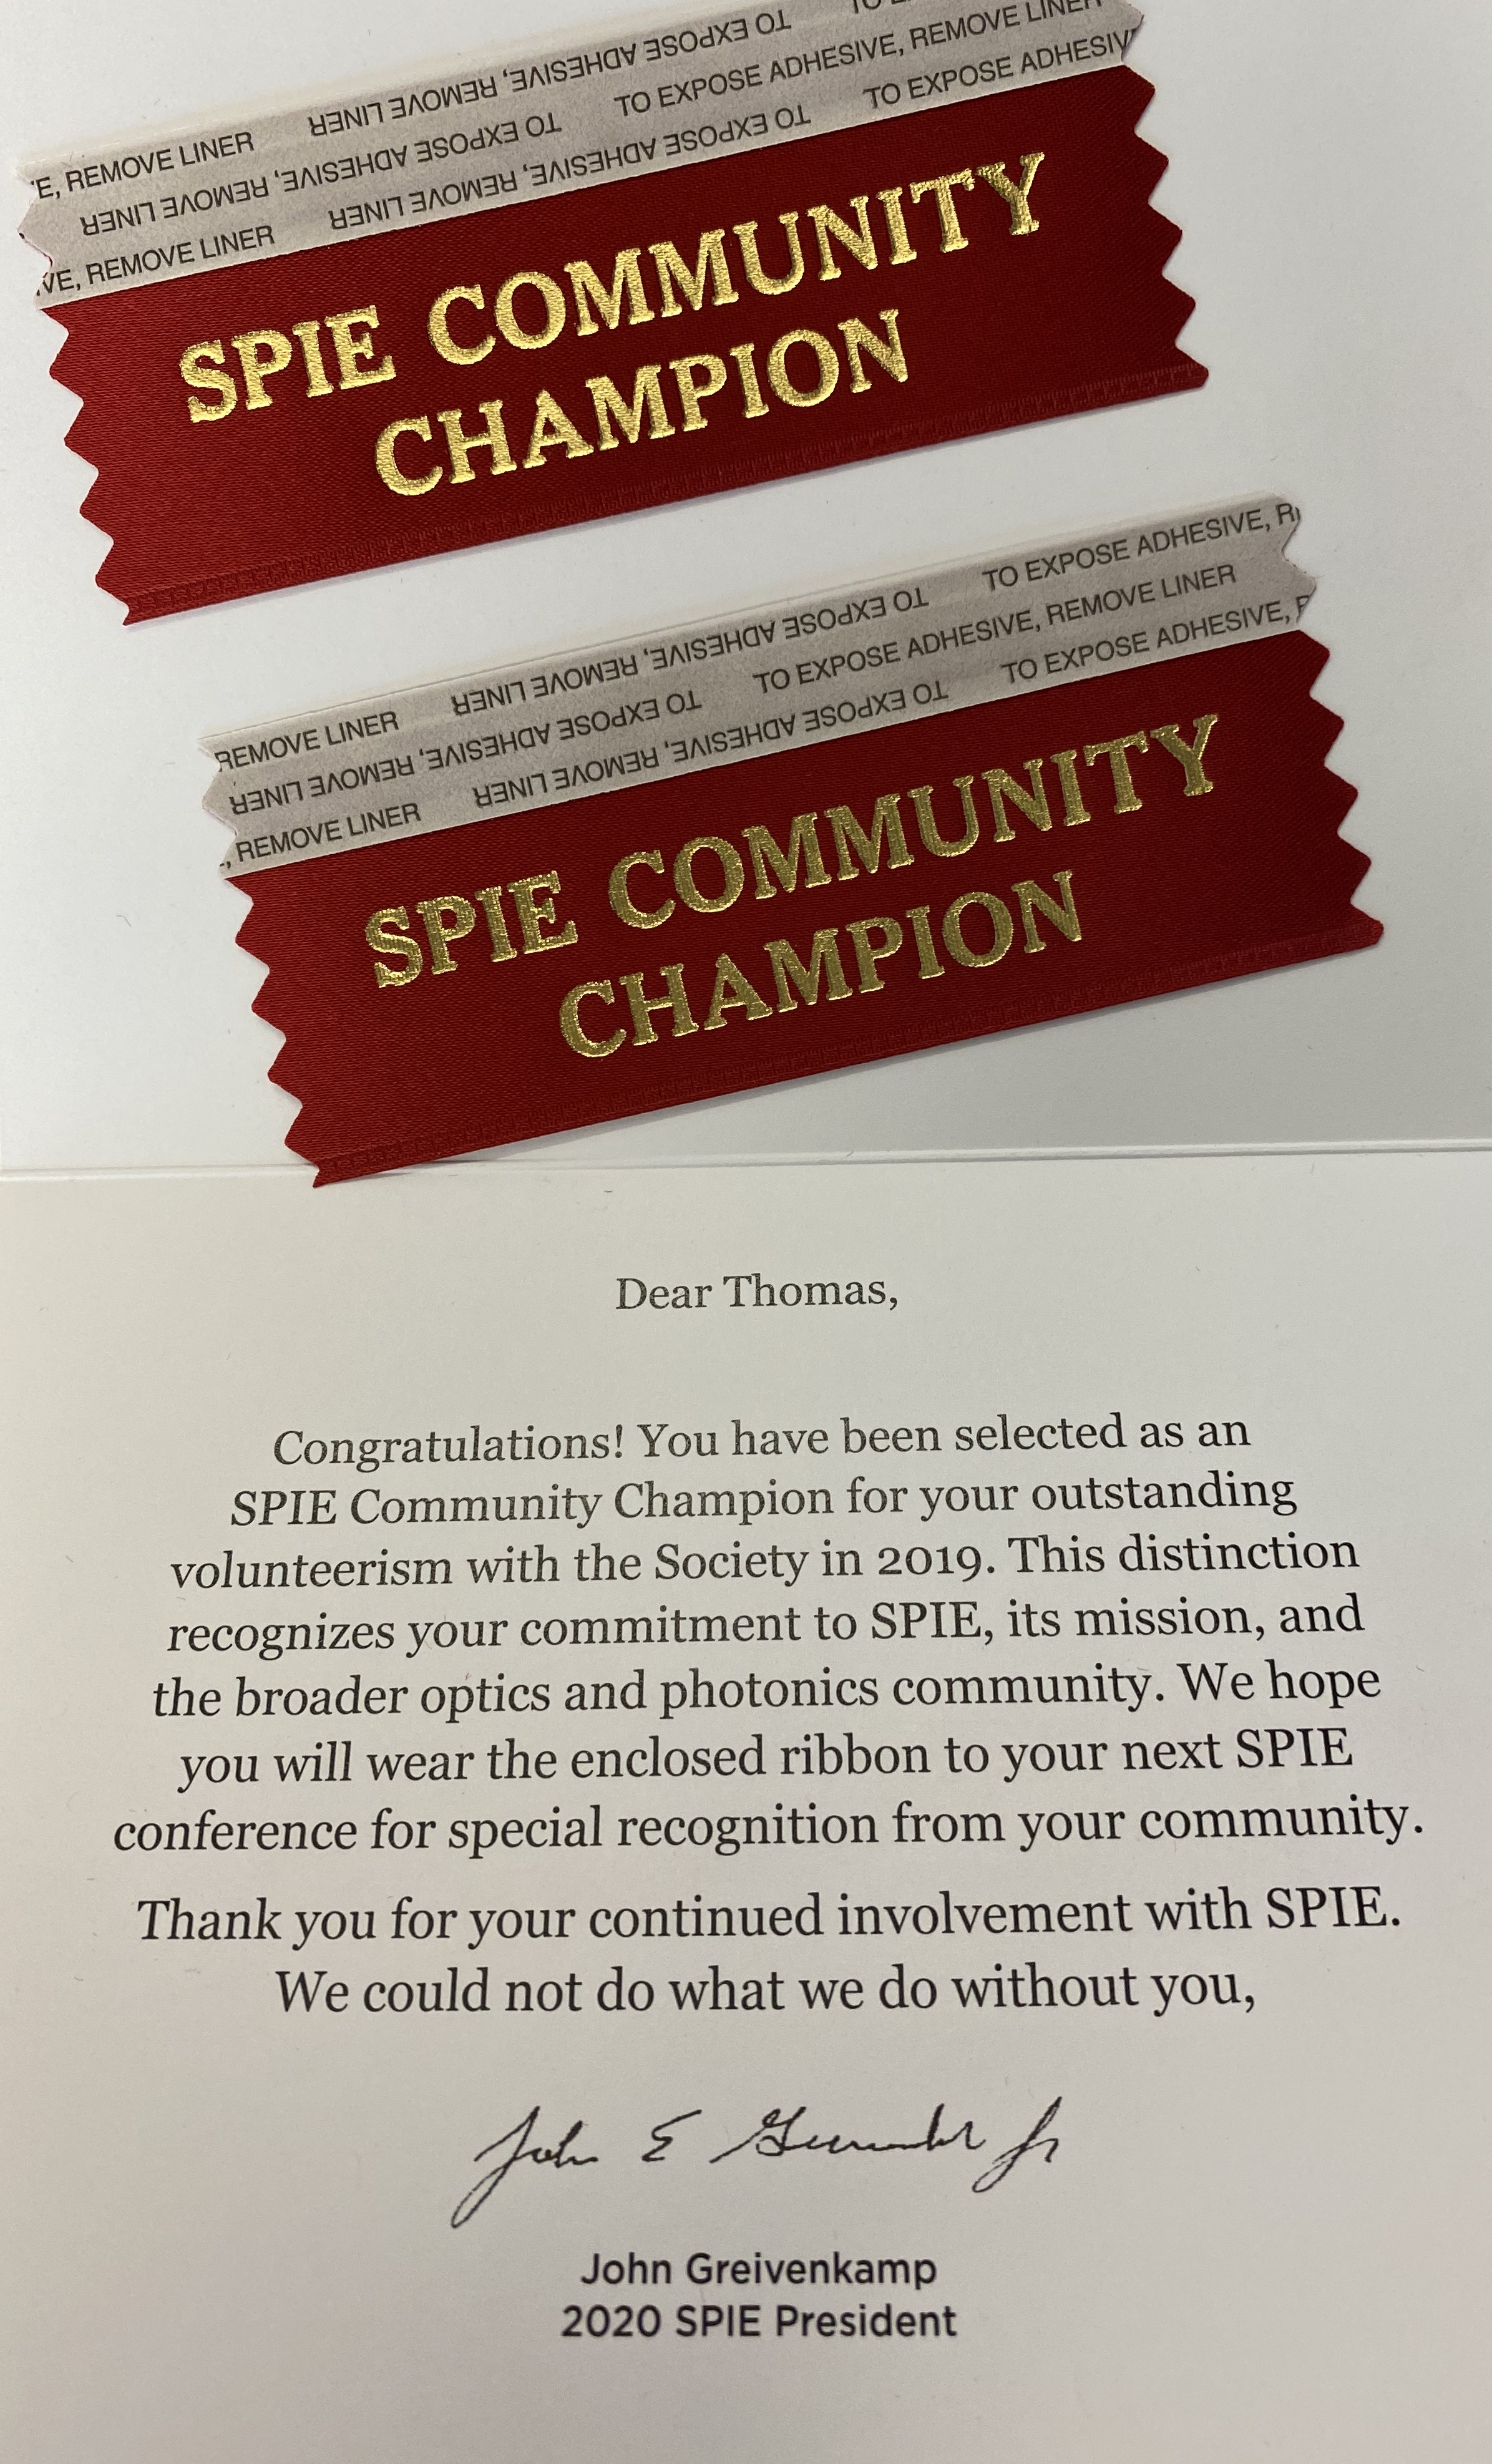 SPIE Community Champion